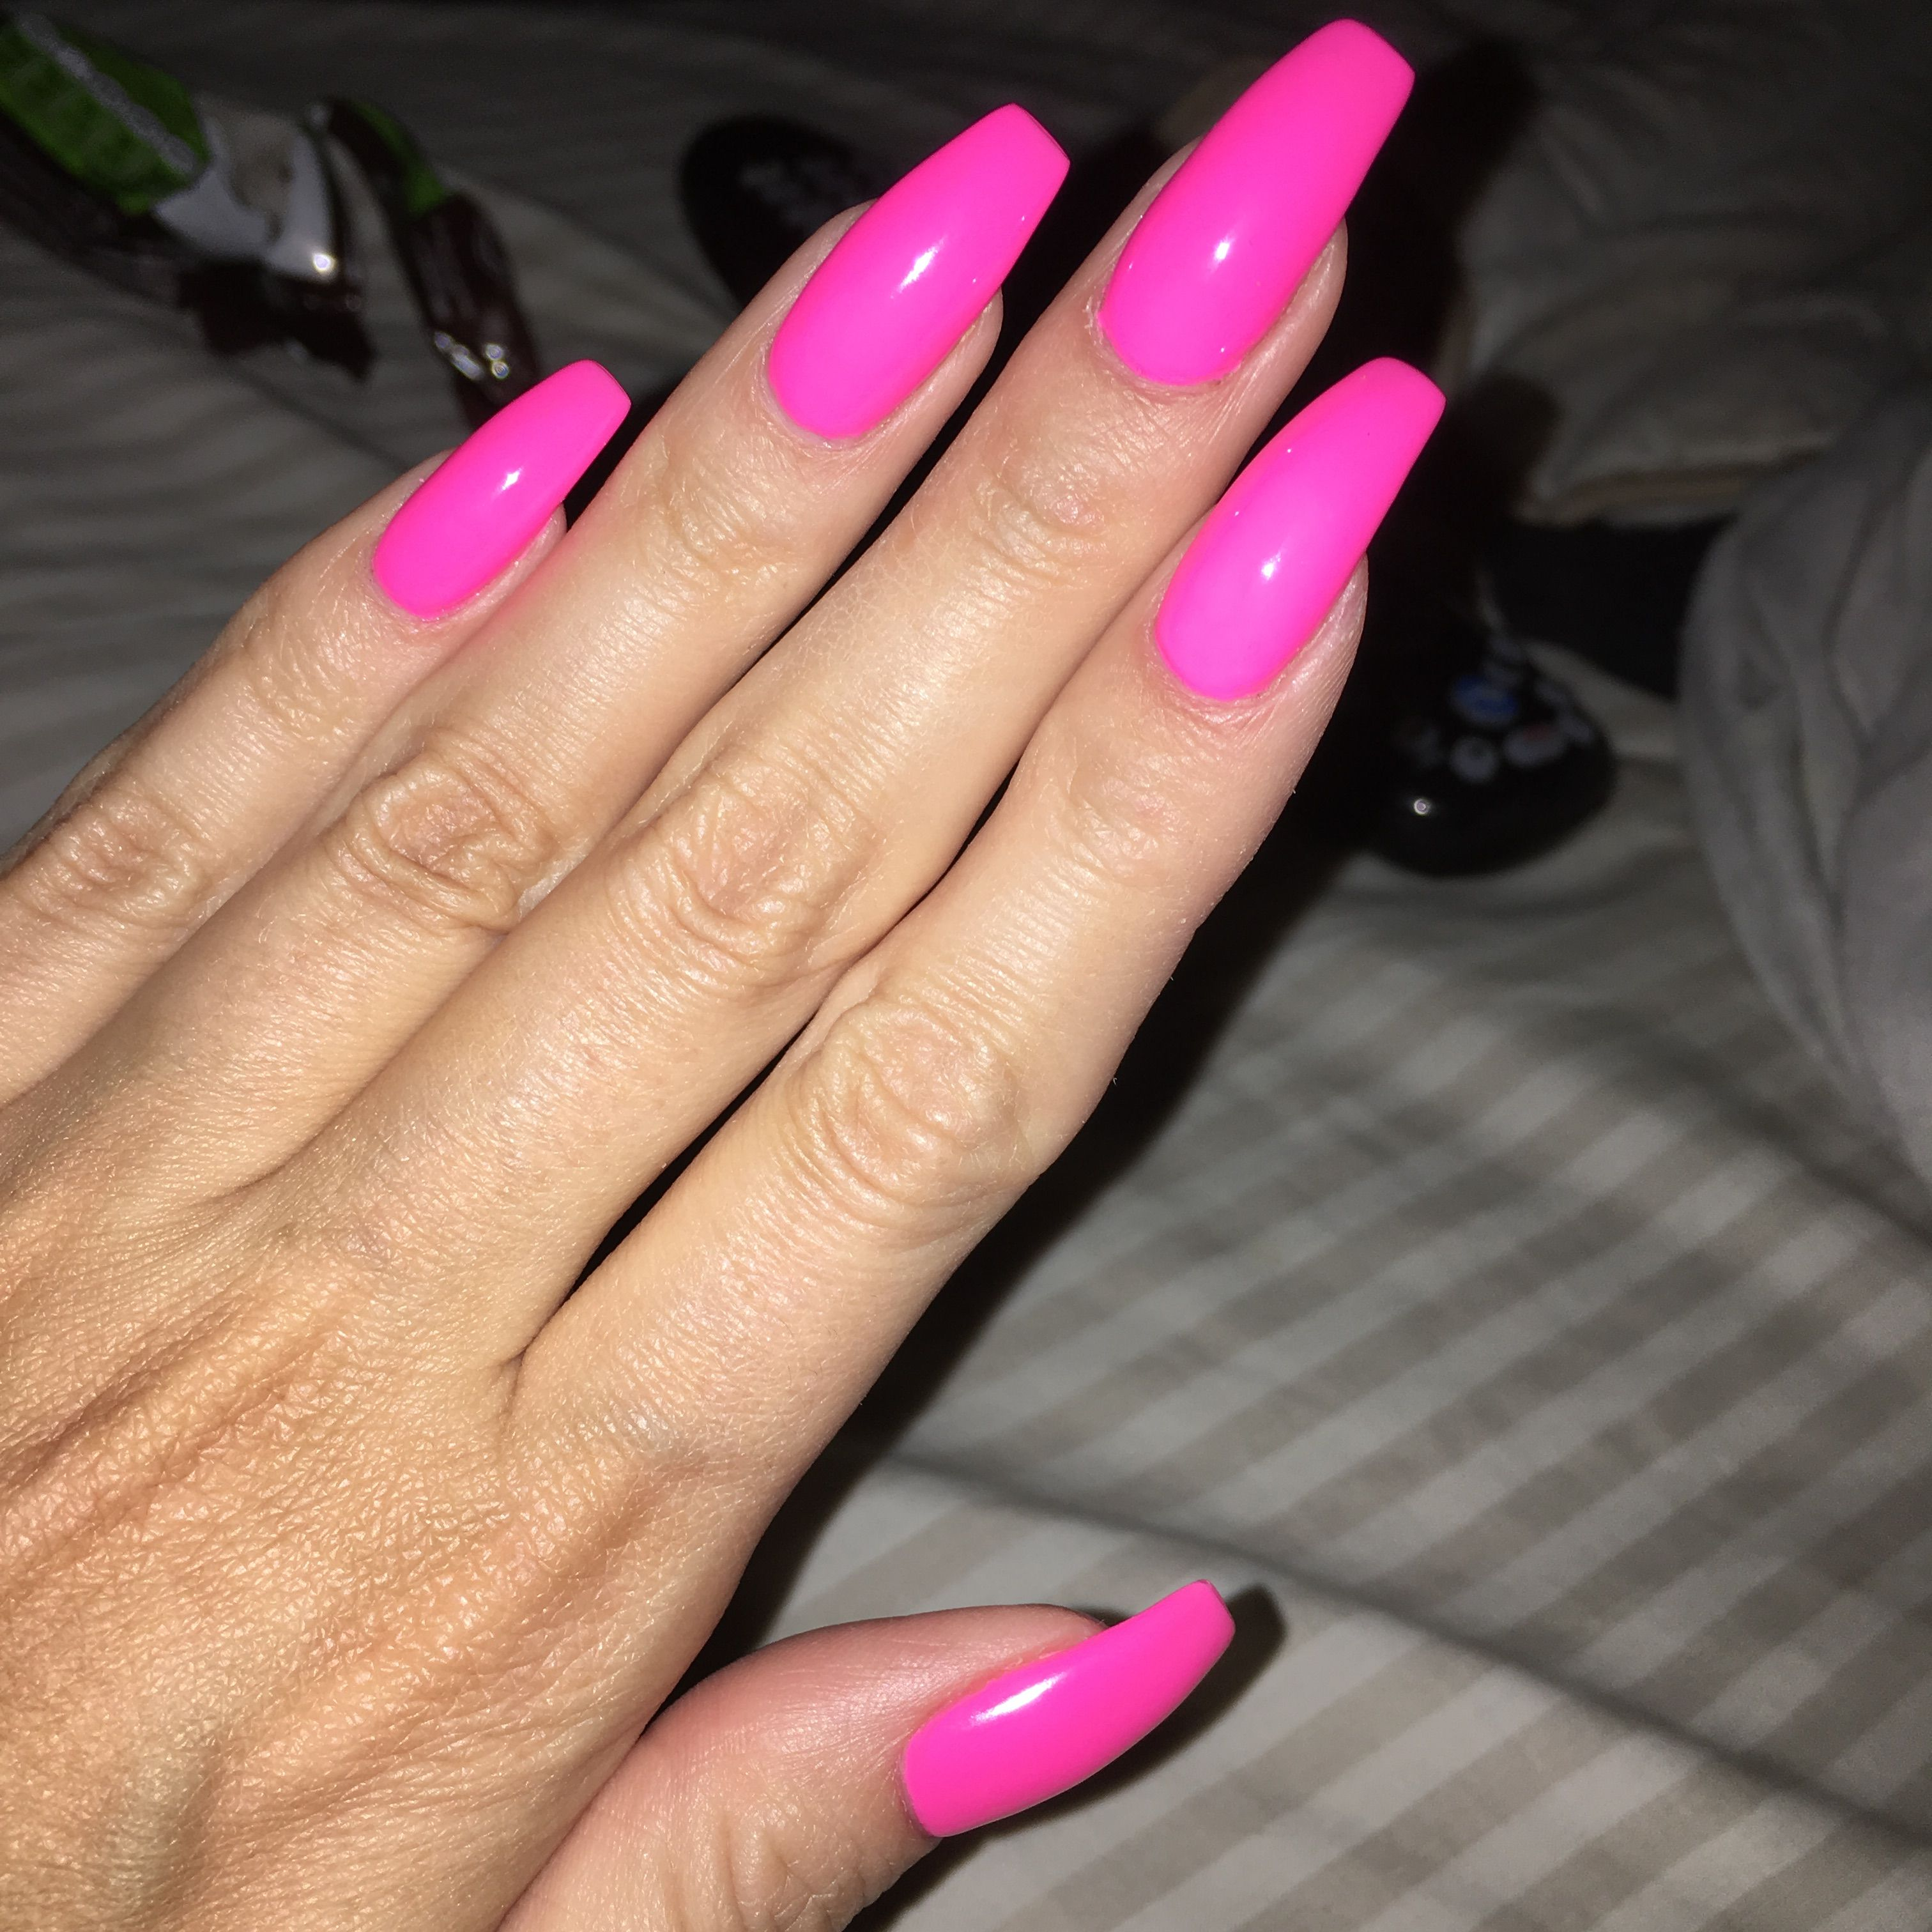 Neon Pink Square Nails Pinterest X Erinvingerhoets Square Acrylic Nails Cute Pink Nails Pink Nails